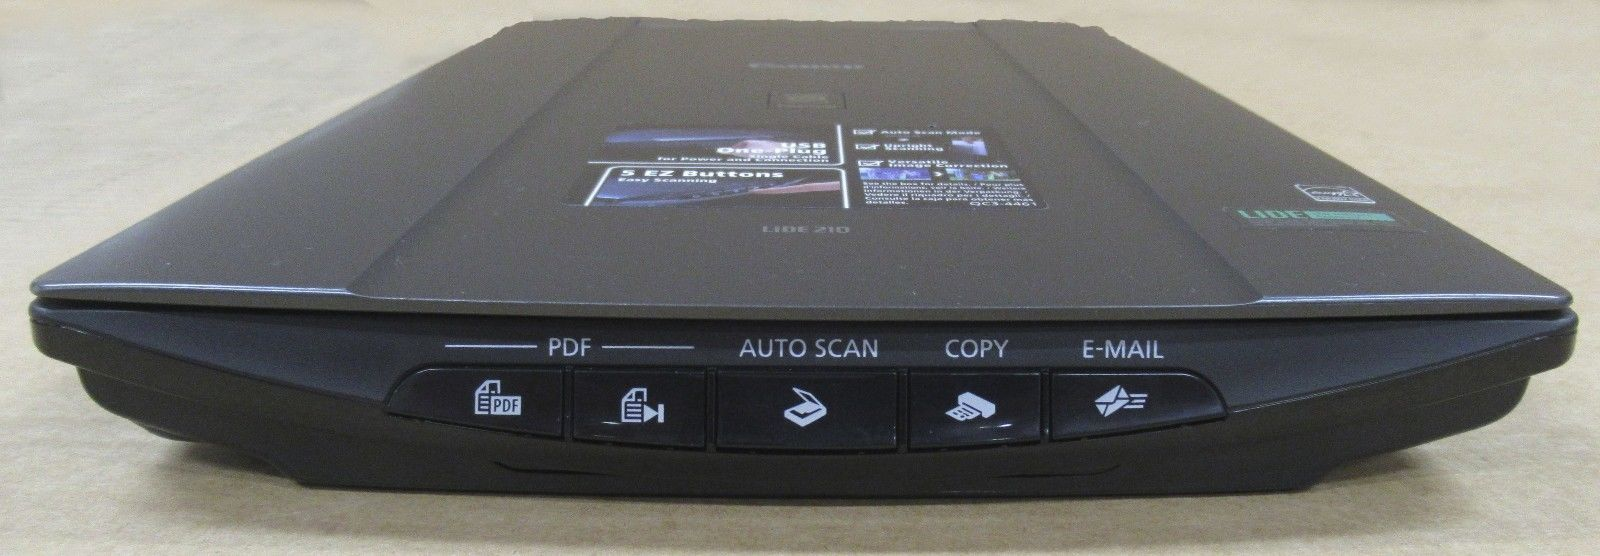 canon lide 210 scan to pdf